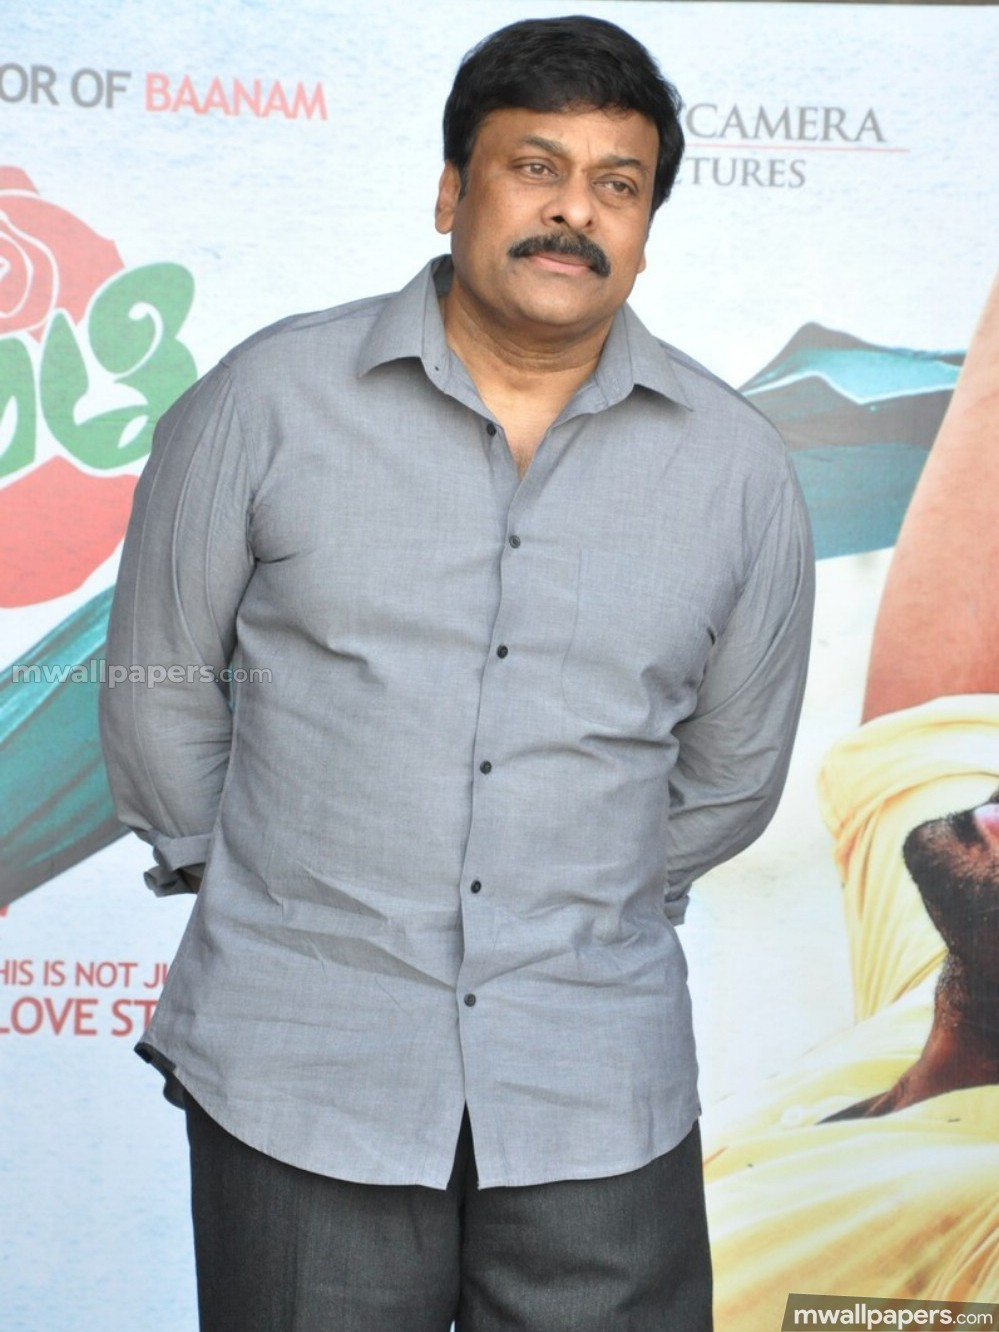 165 chiranjeevi hd wallpapers images 1080p 999x1332 2020 chiranjeevi hd wallpapers images 1080p